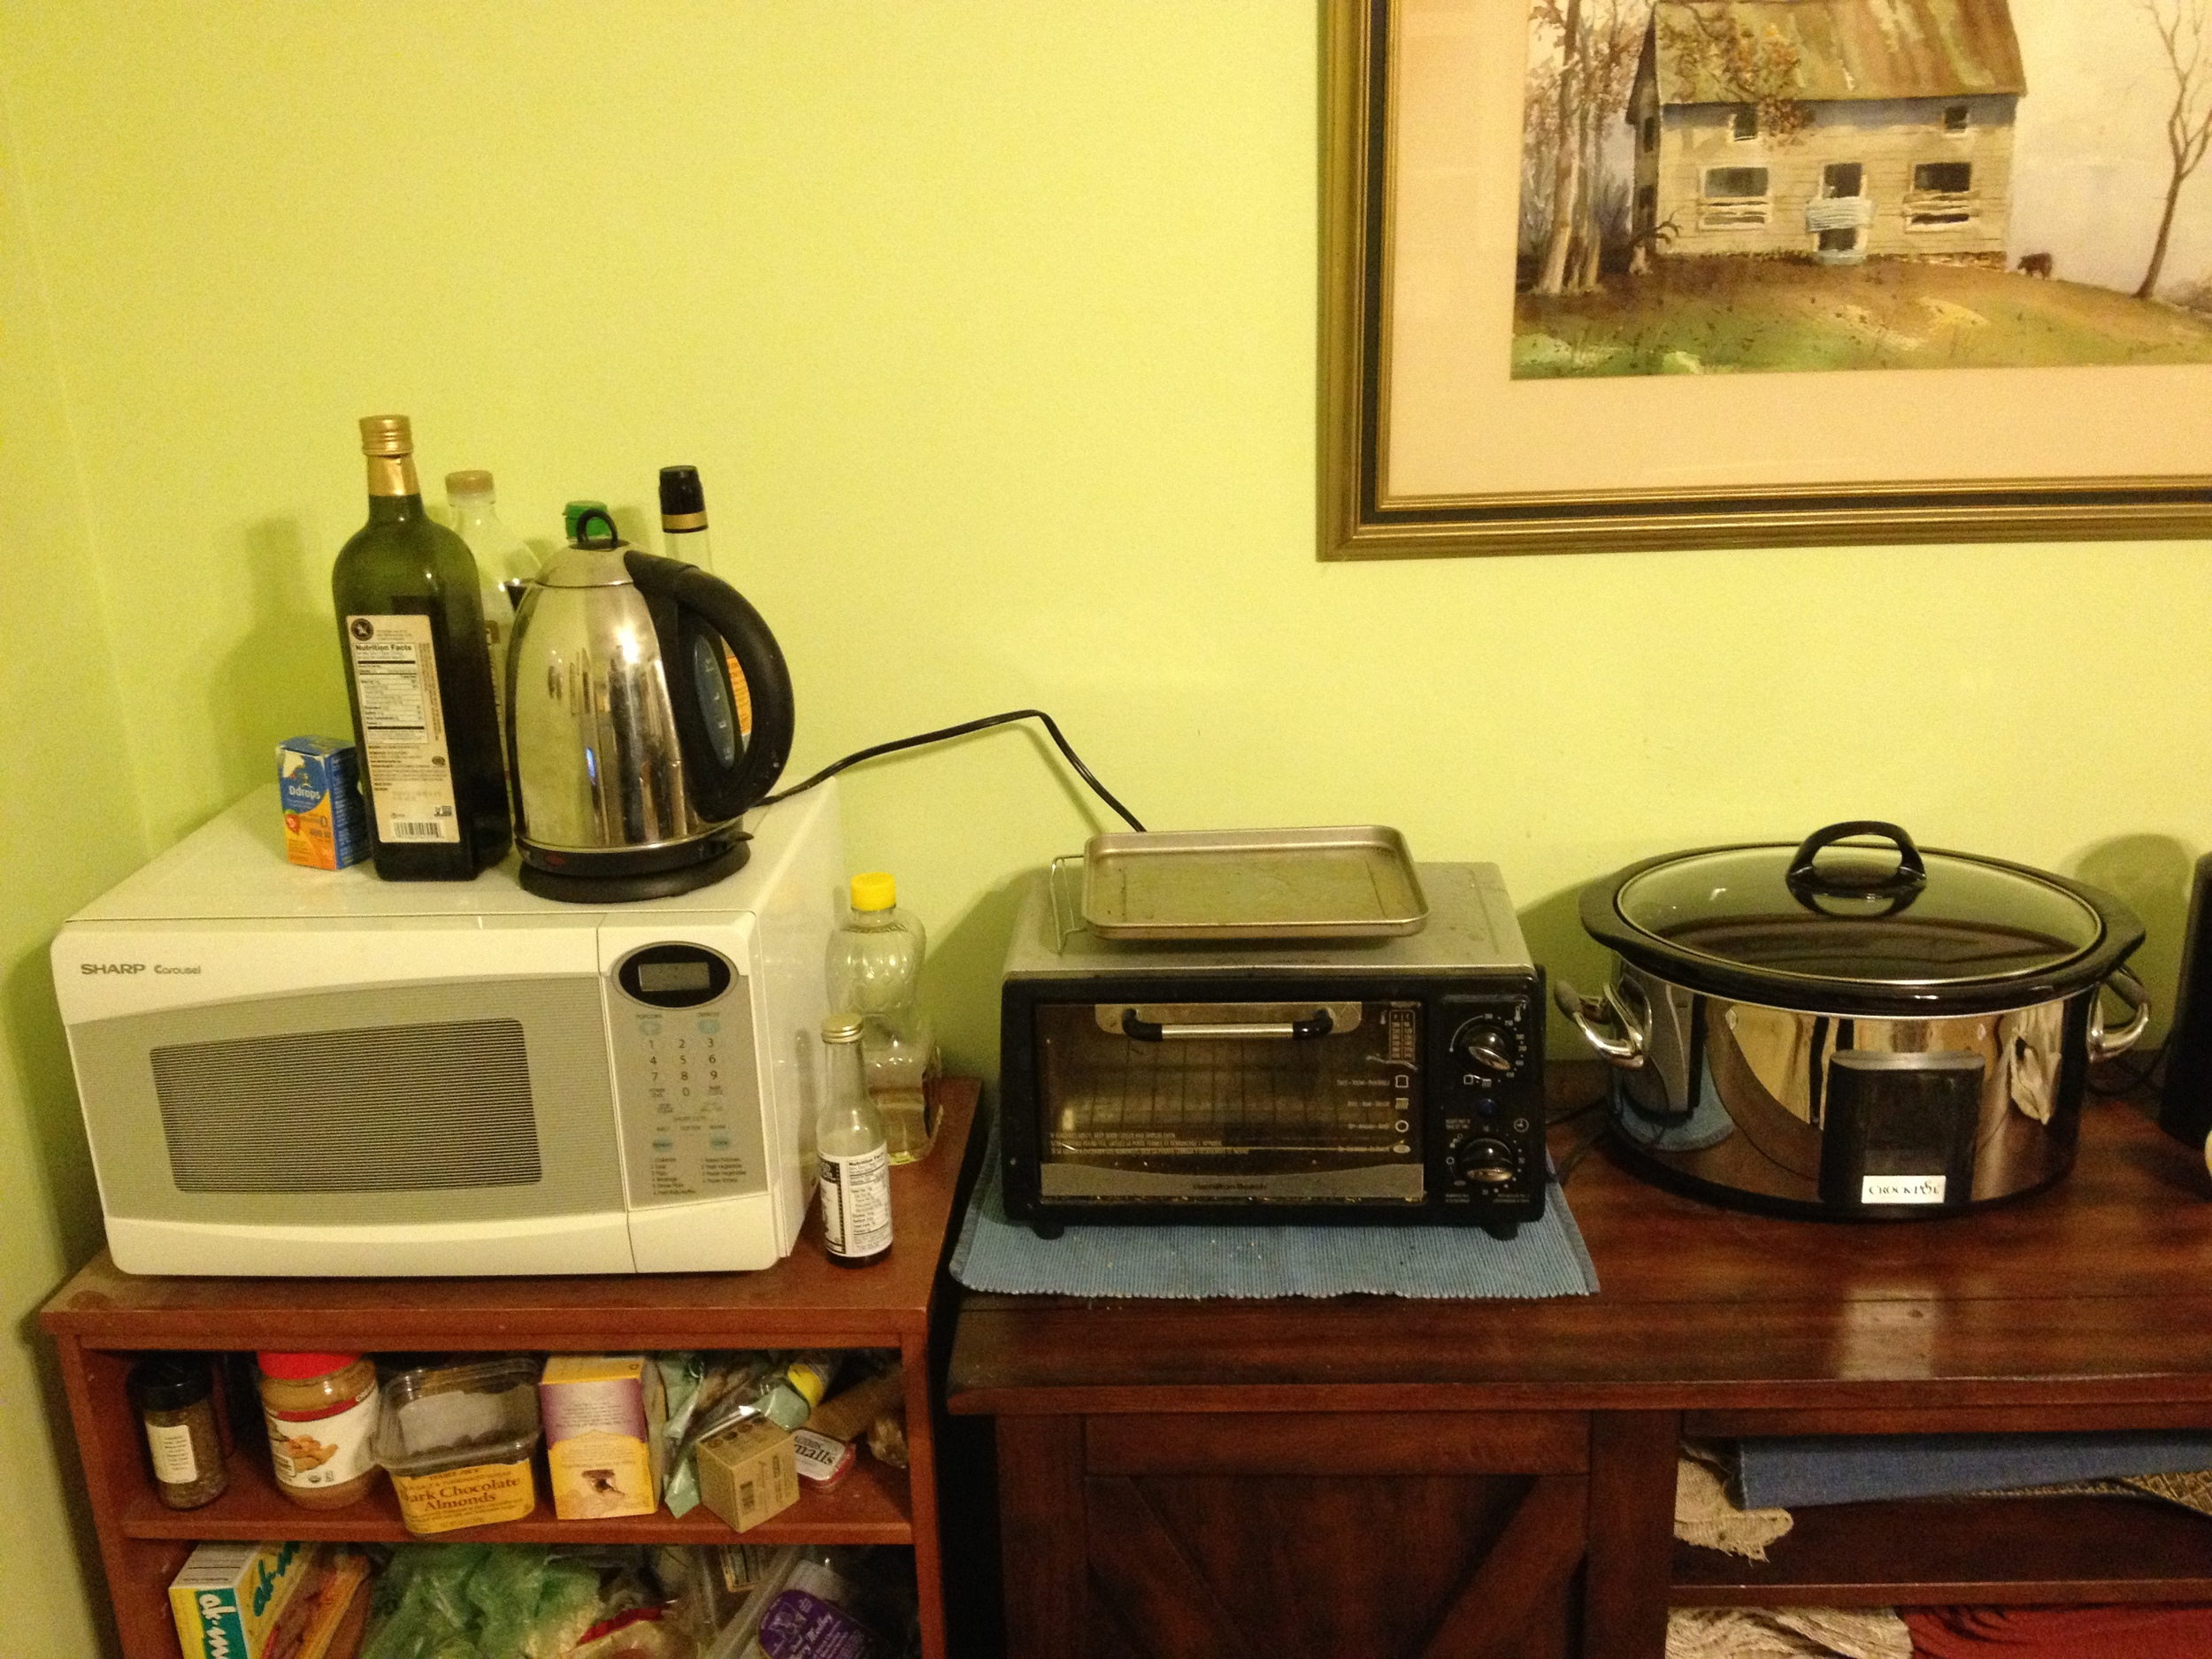 Our makeshift kitchen